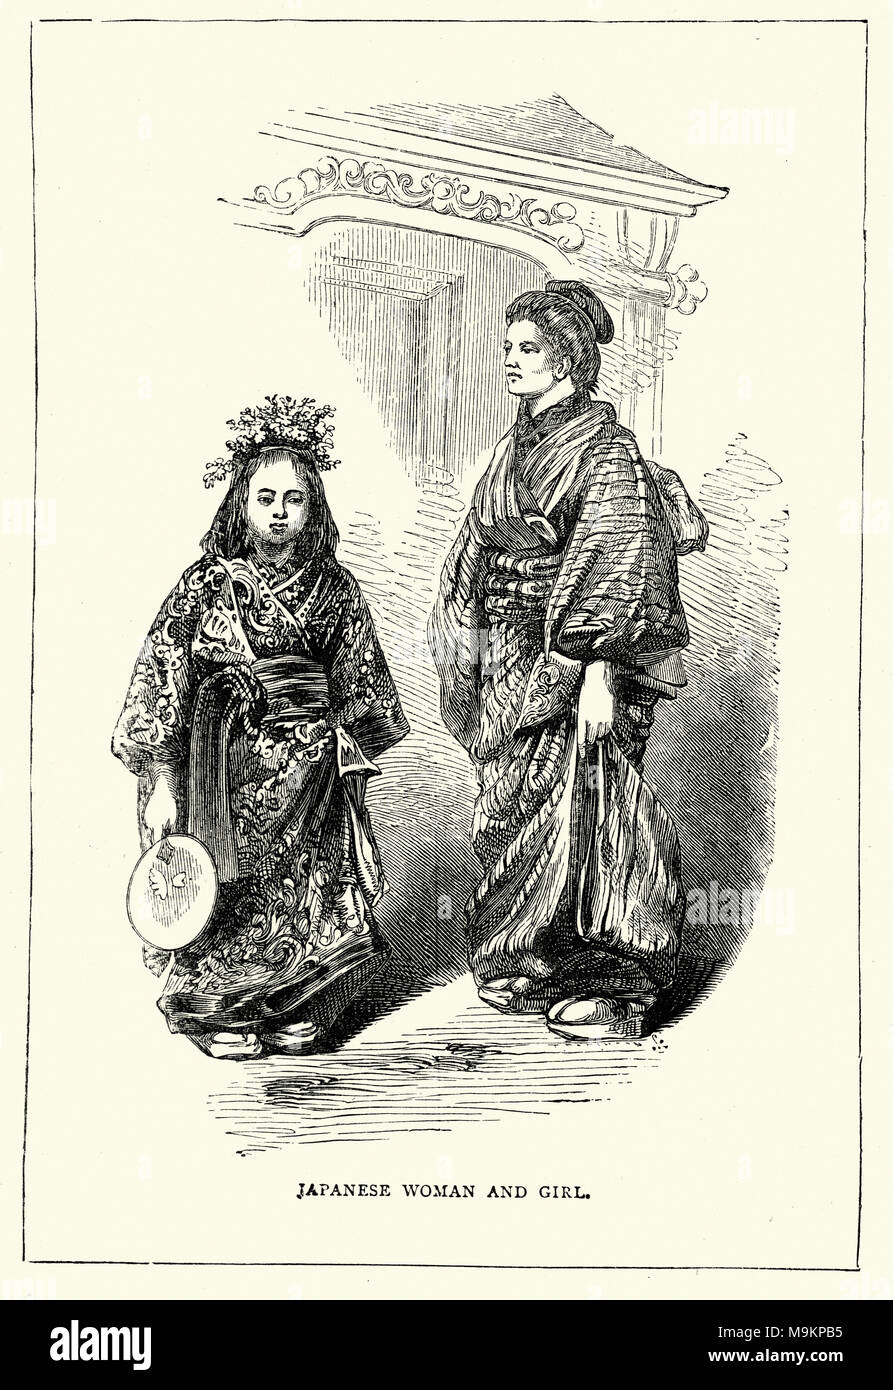 Japanese woman and girl in traditional costume. 19th Century - Stock Image